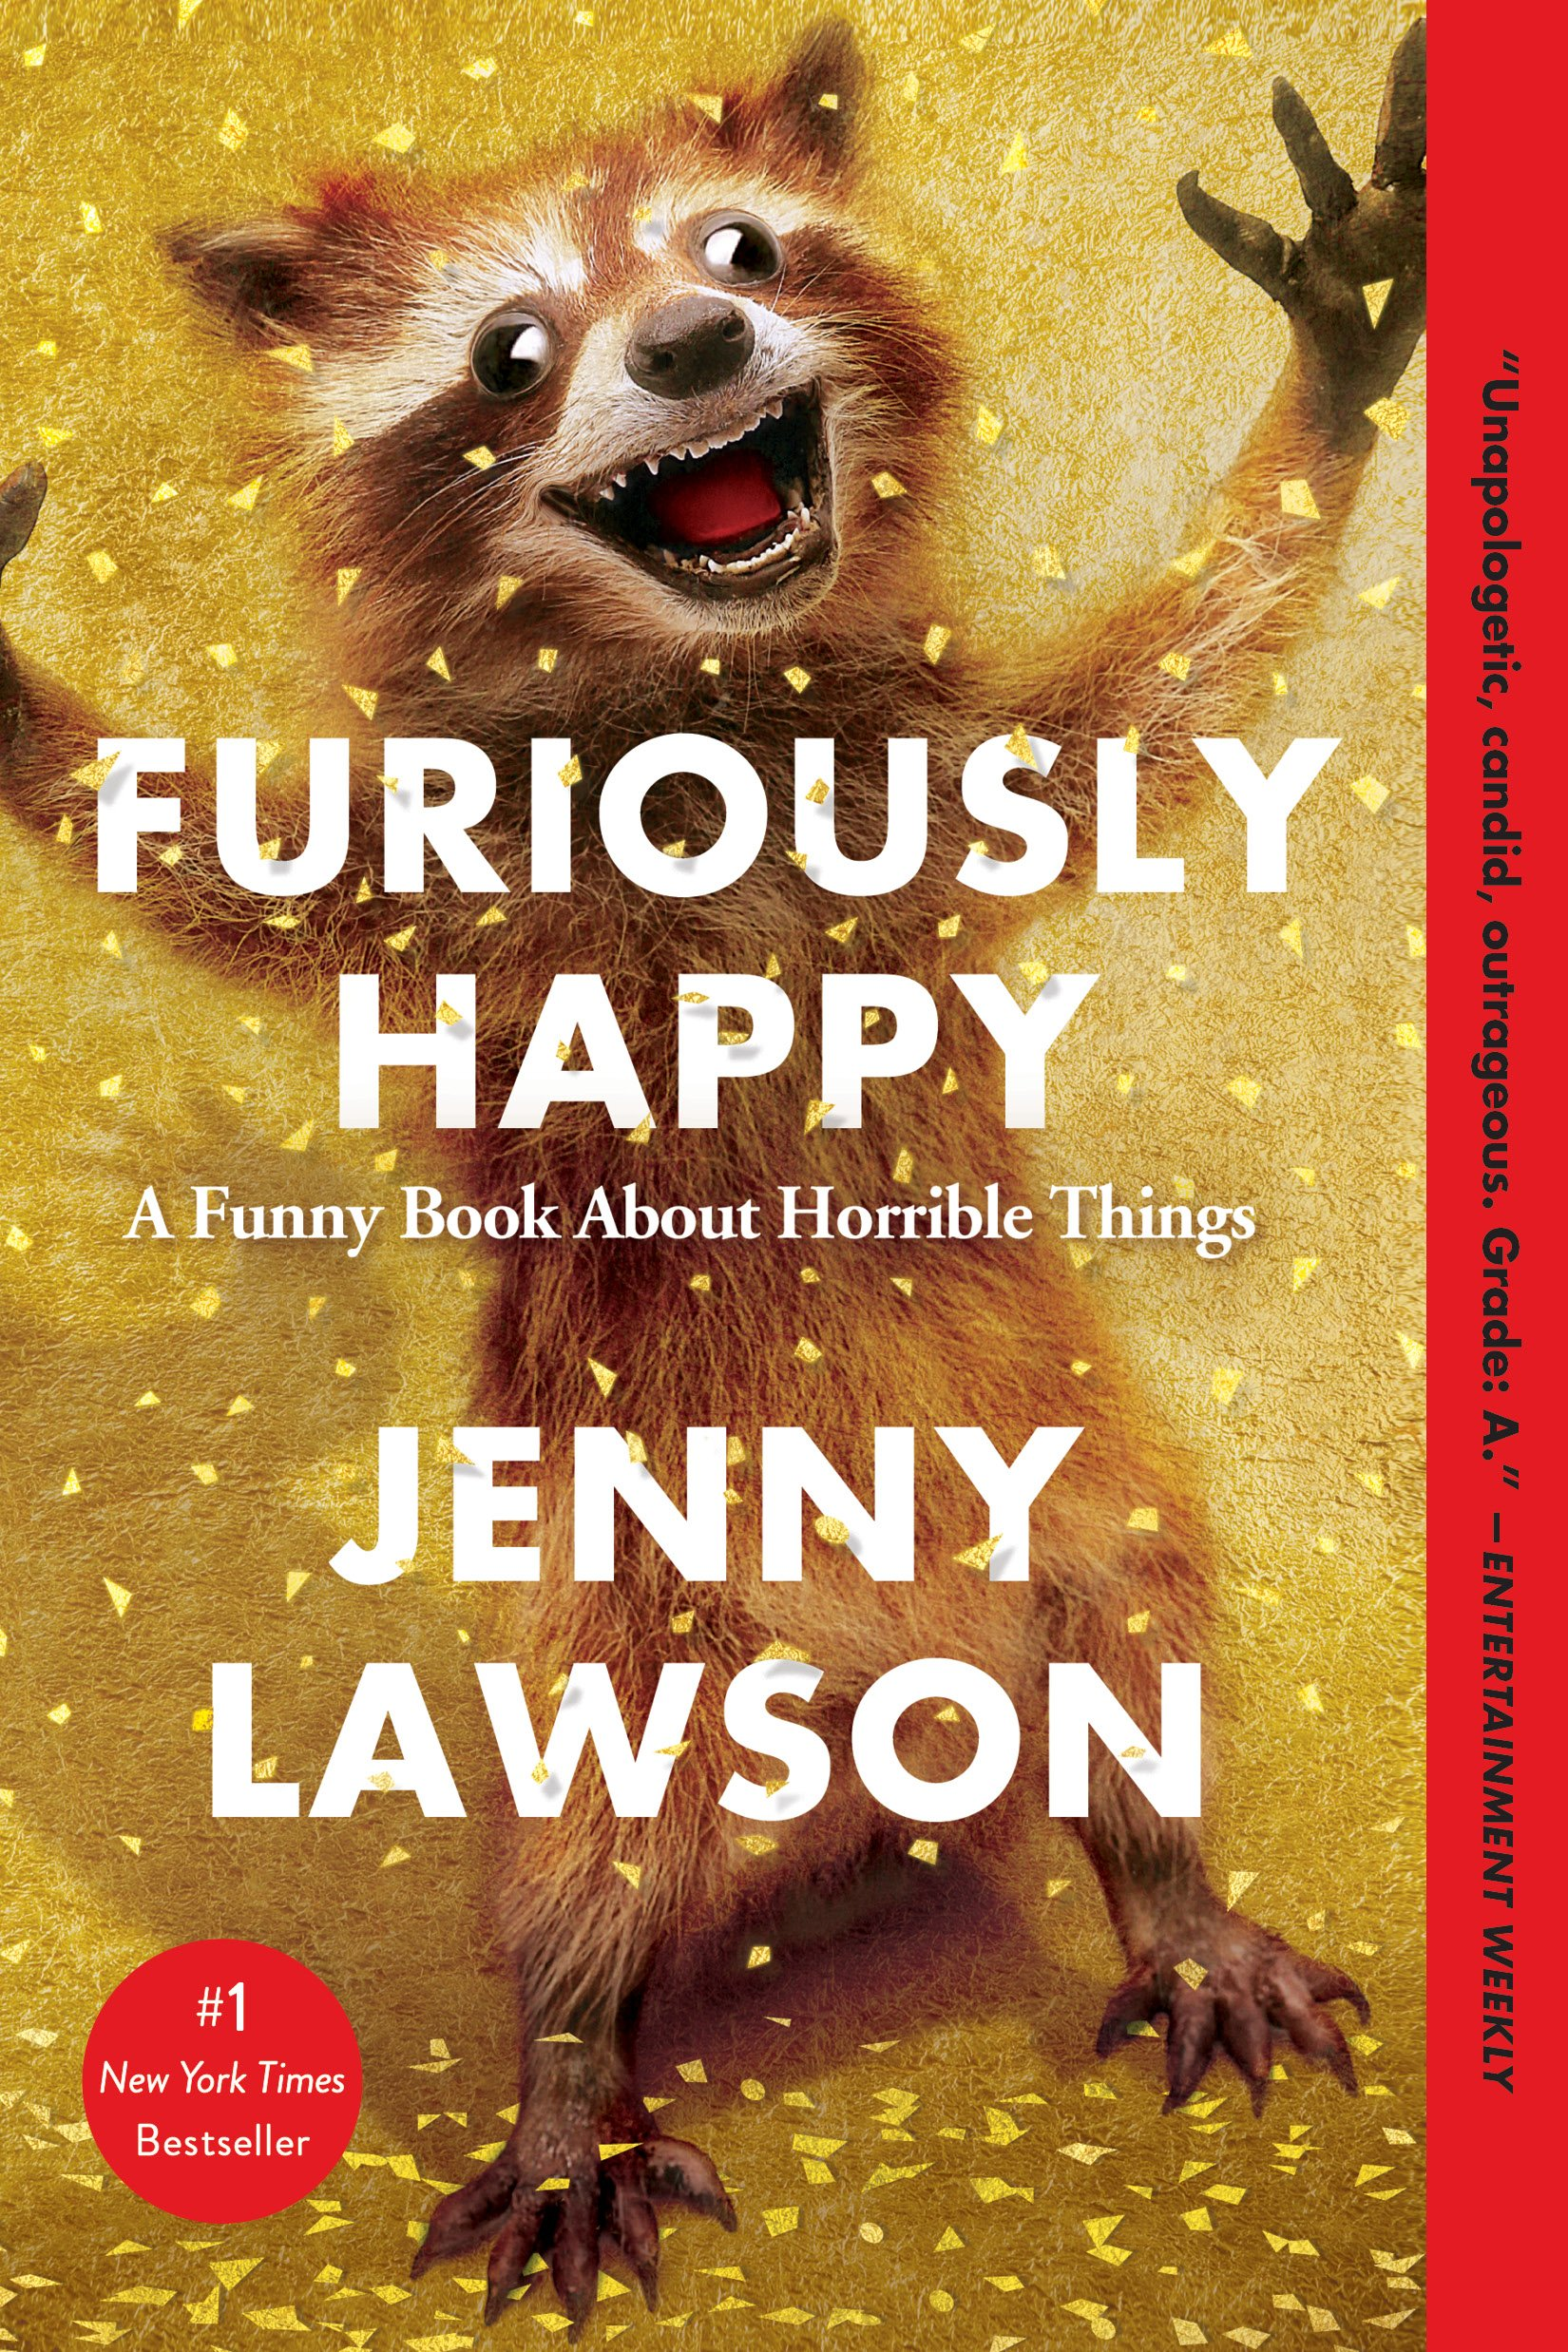 Furiously Happy A Funny Book About Horrible Things Pdf